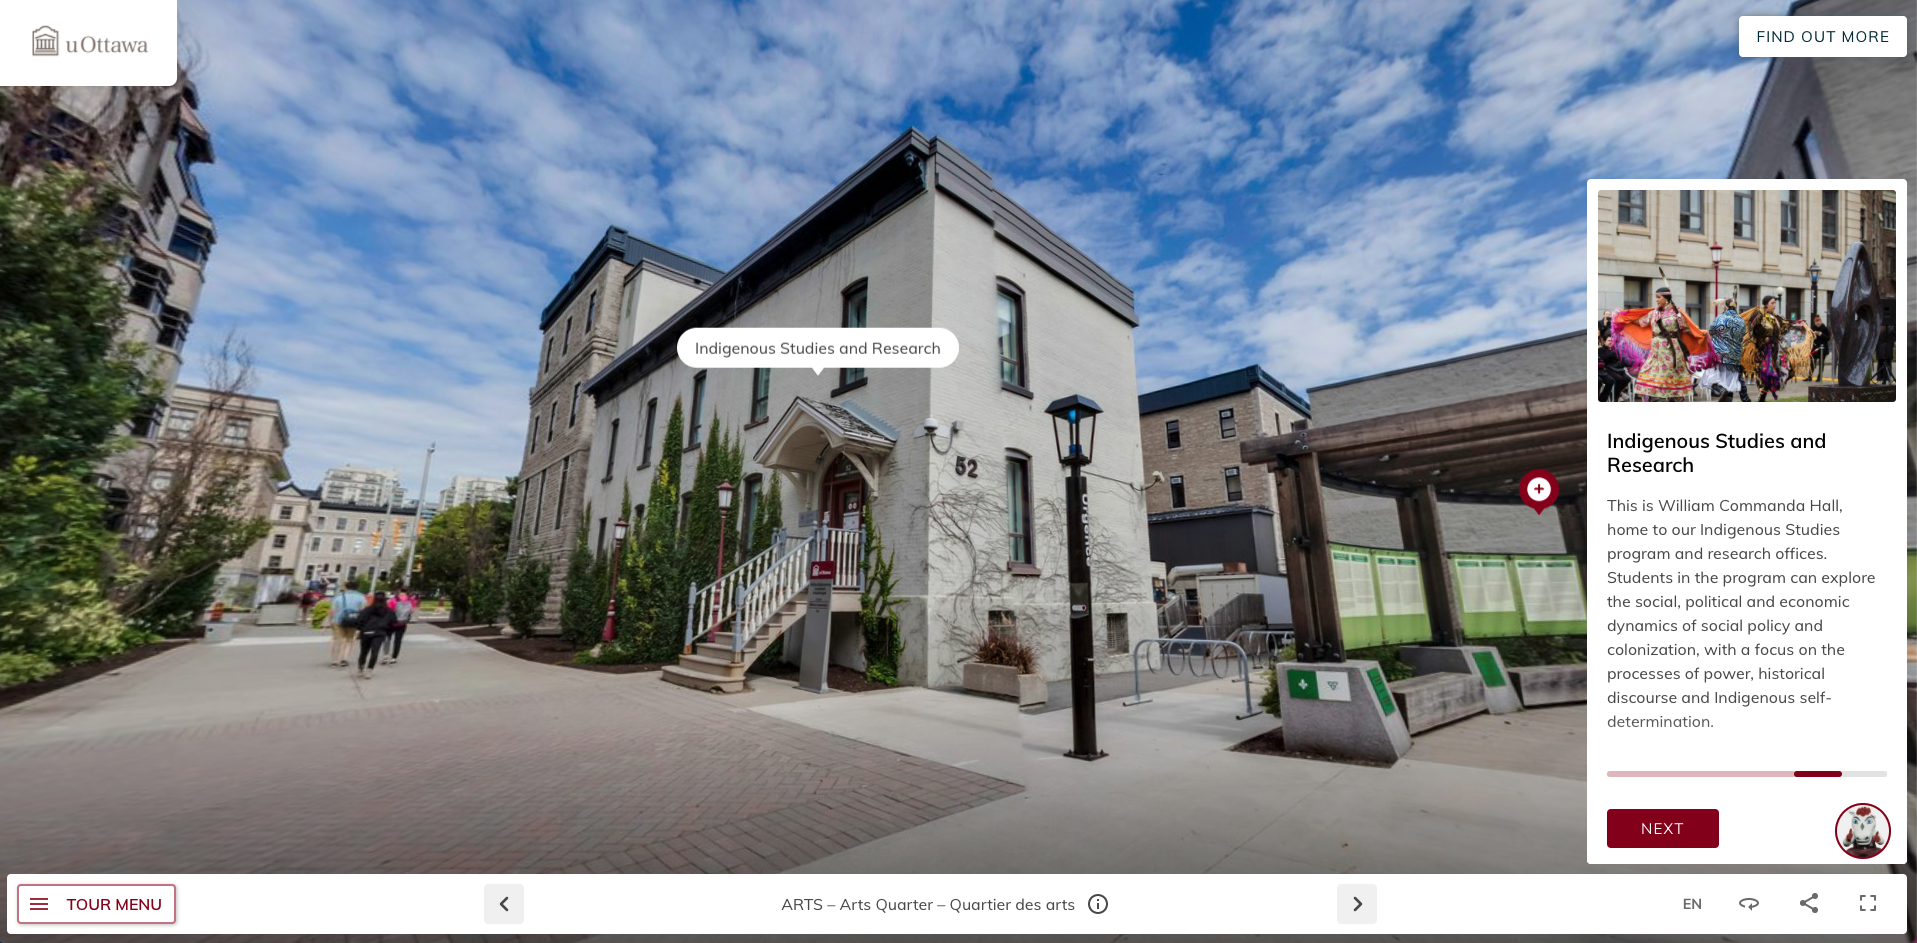 Screenshot from uOttawa's virtual tour. Shows the Indigenous Studies and Research building.